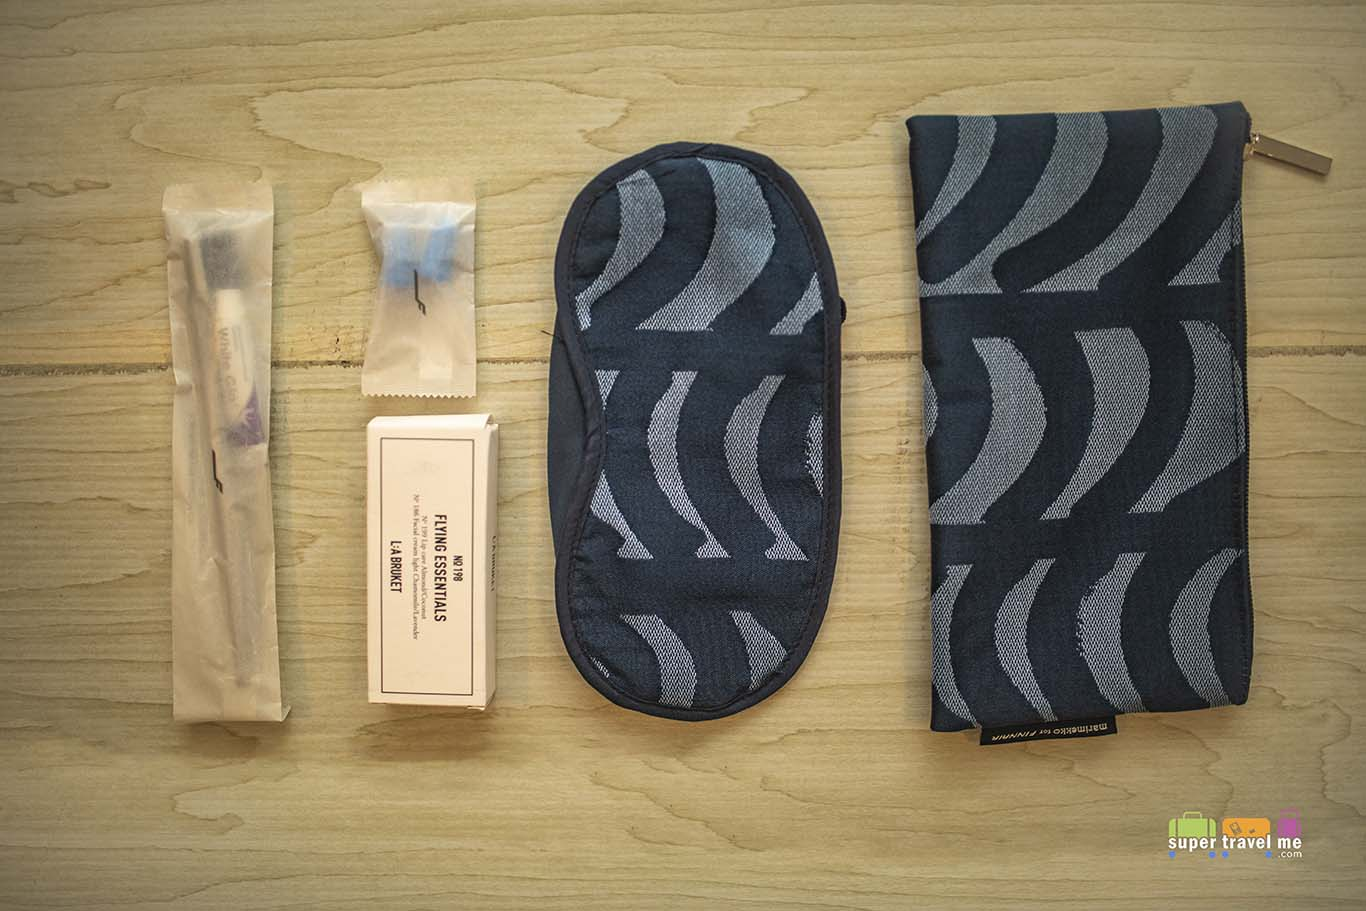 The new Finnair Business Class Amenity Kits for 2019 and its contents